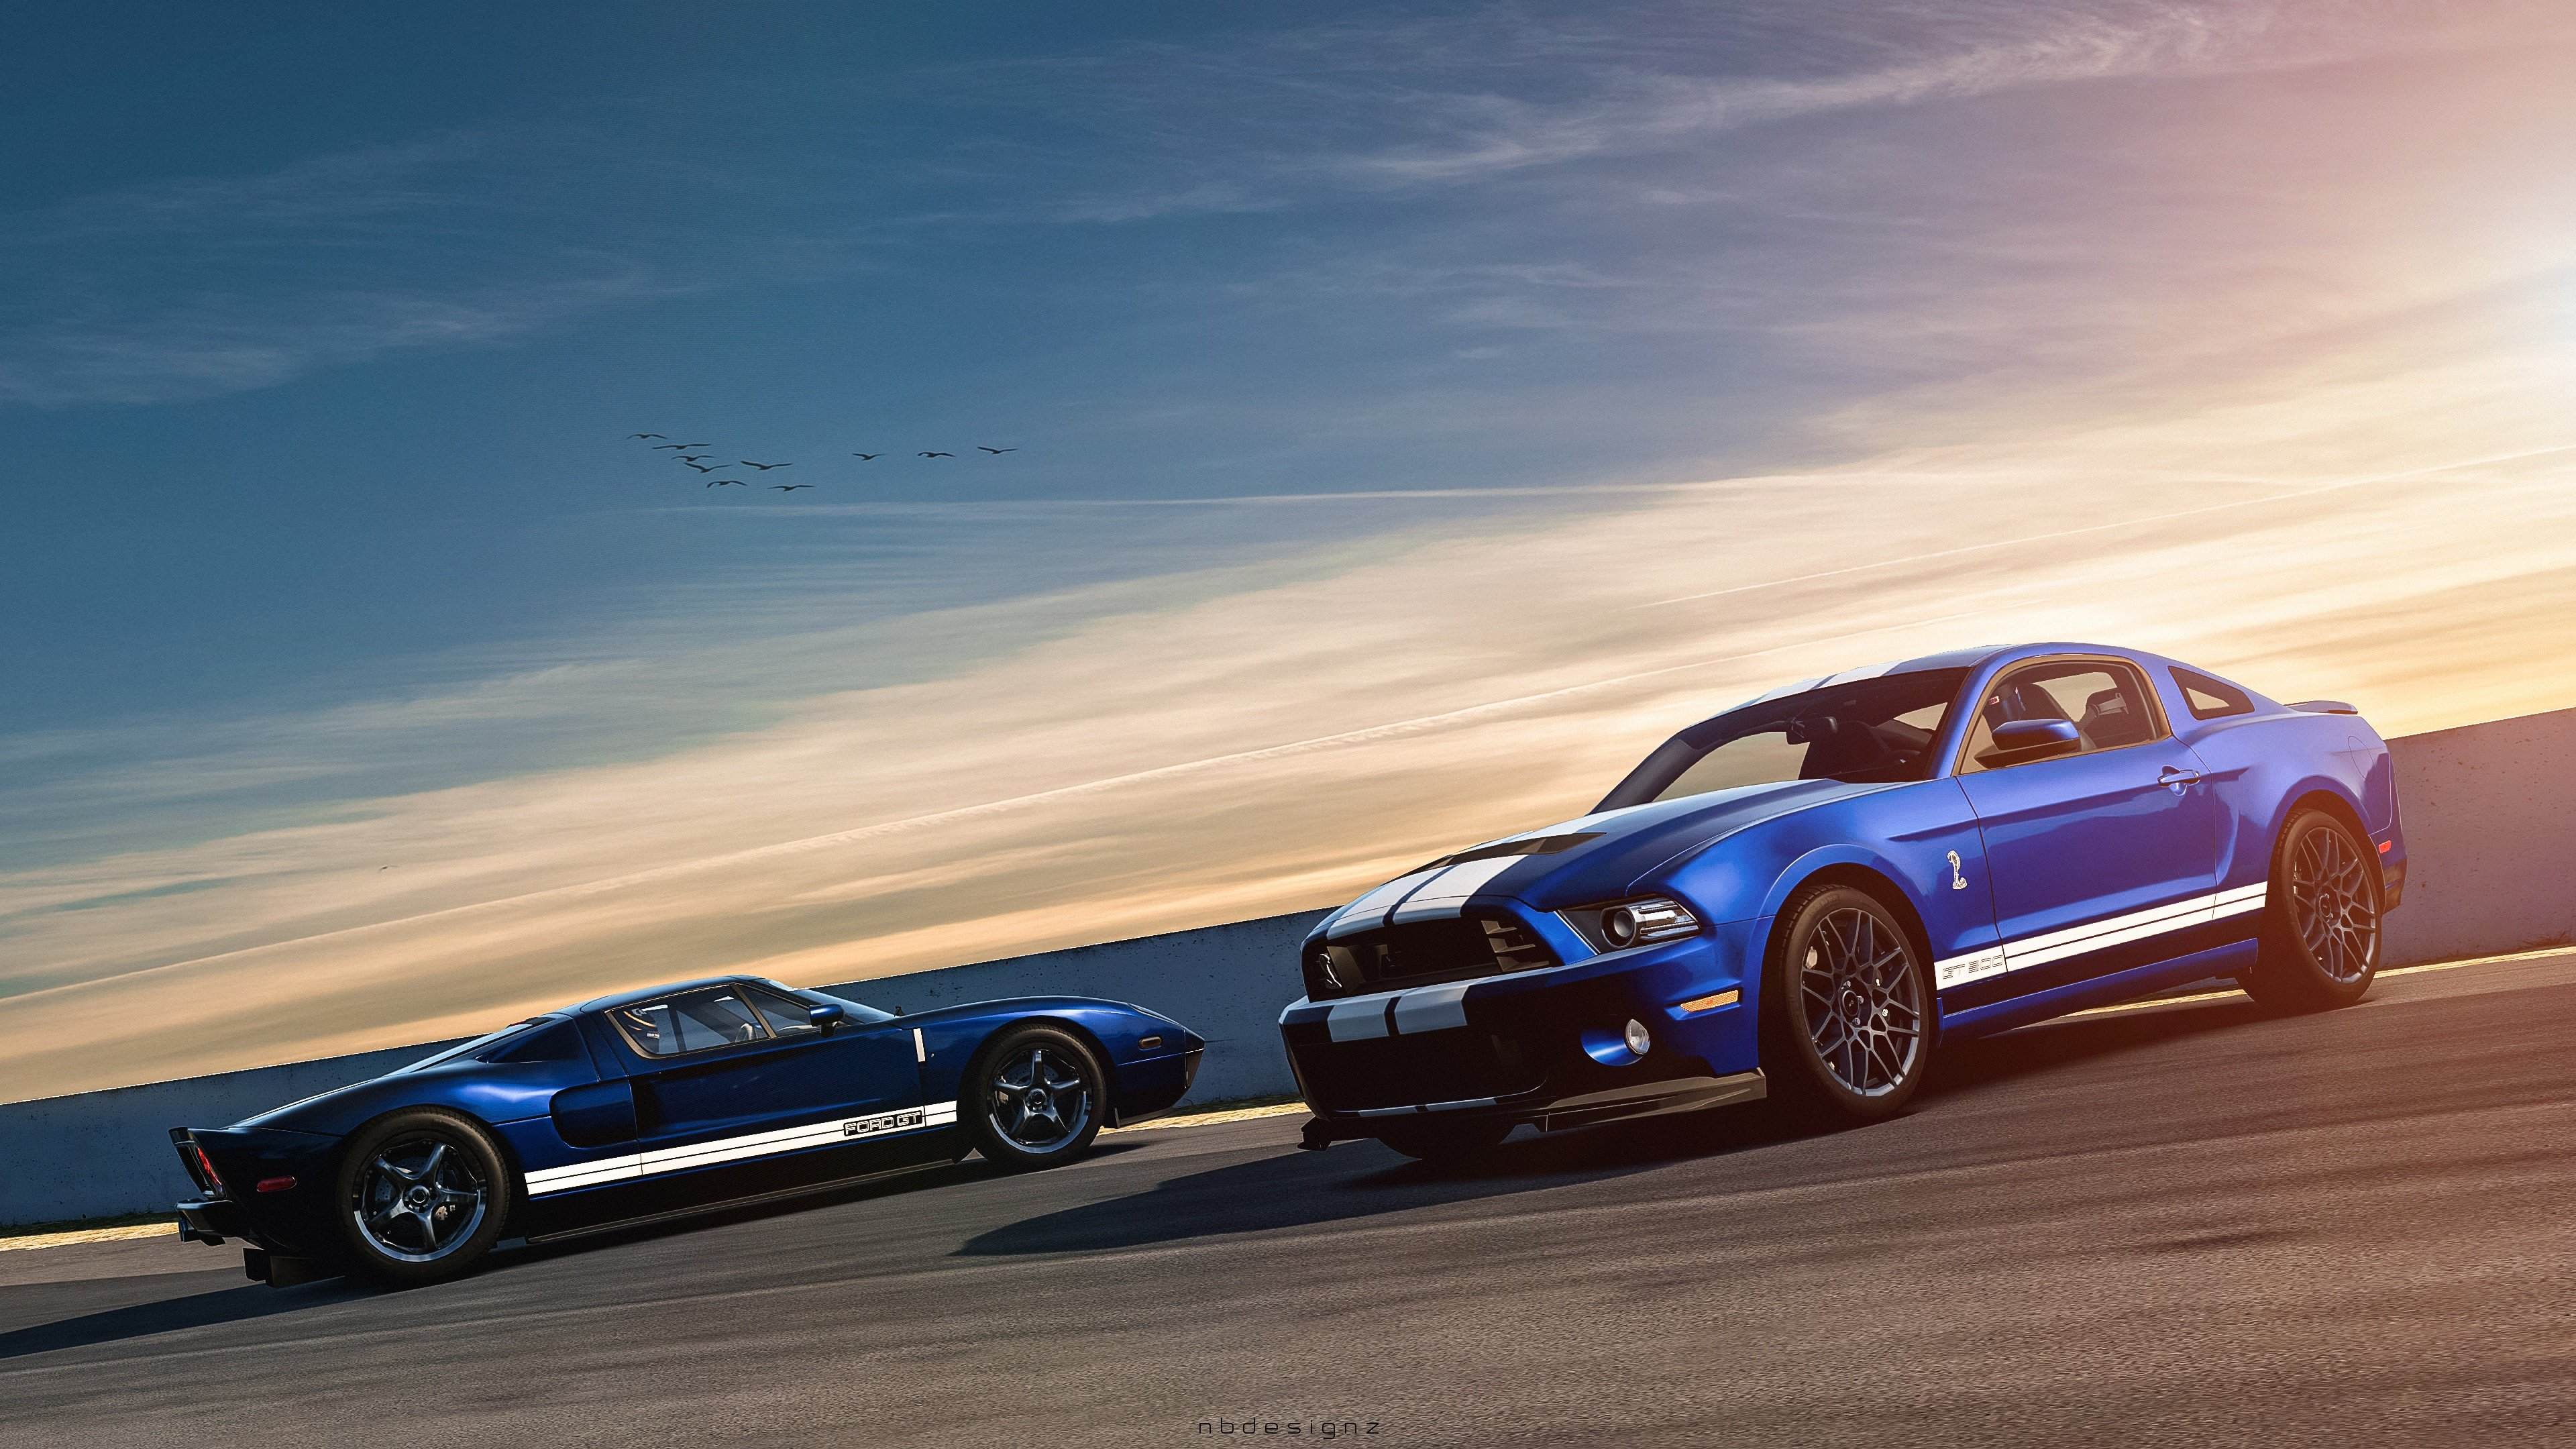 Ford Mustang Shelby GT500 Ford GT Wallpaper HD Car 3840x2160